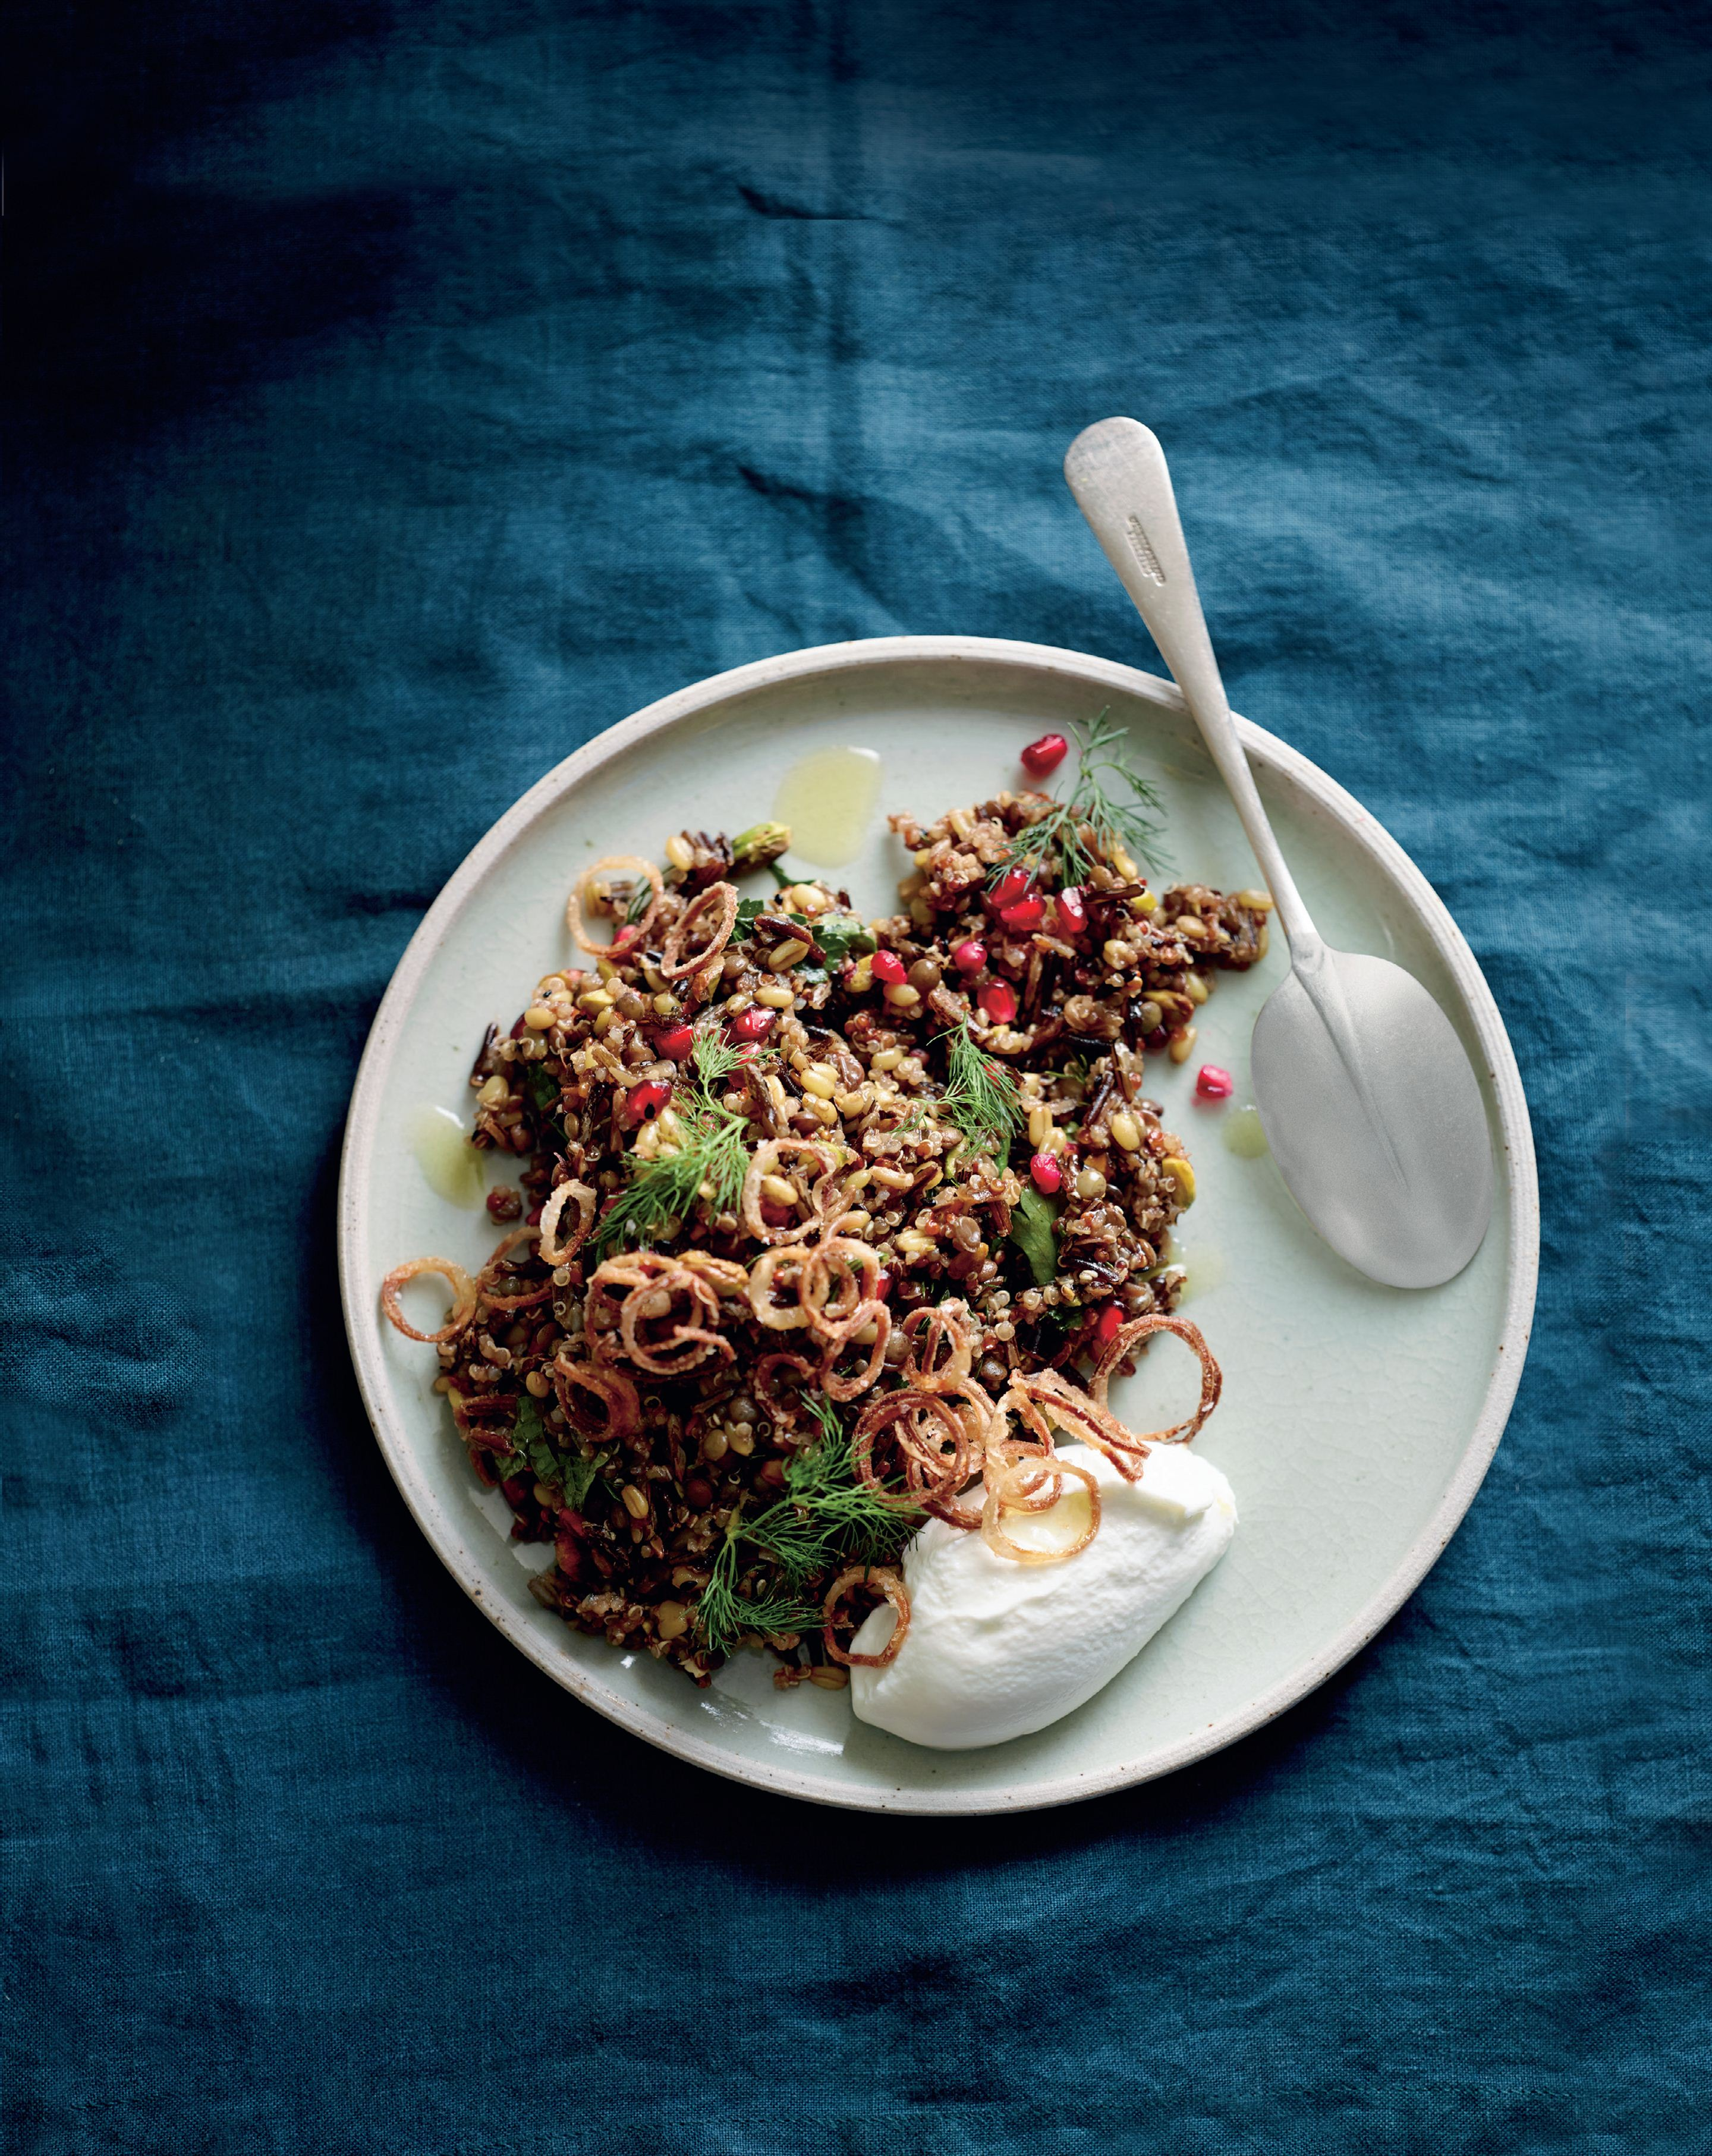 Ancient grain salad, goat's curd, pomegranate, crispy fried shallots